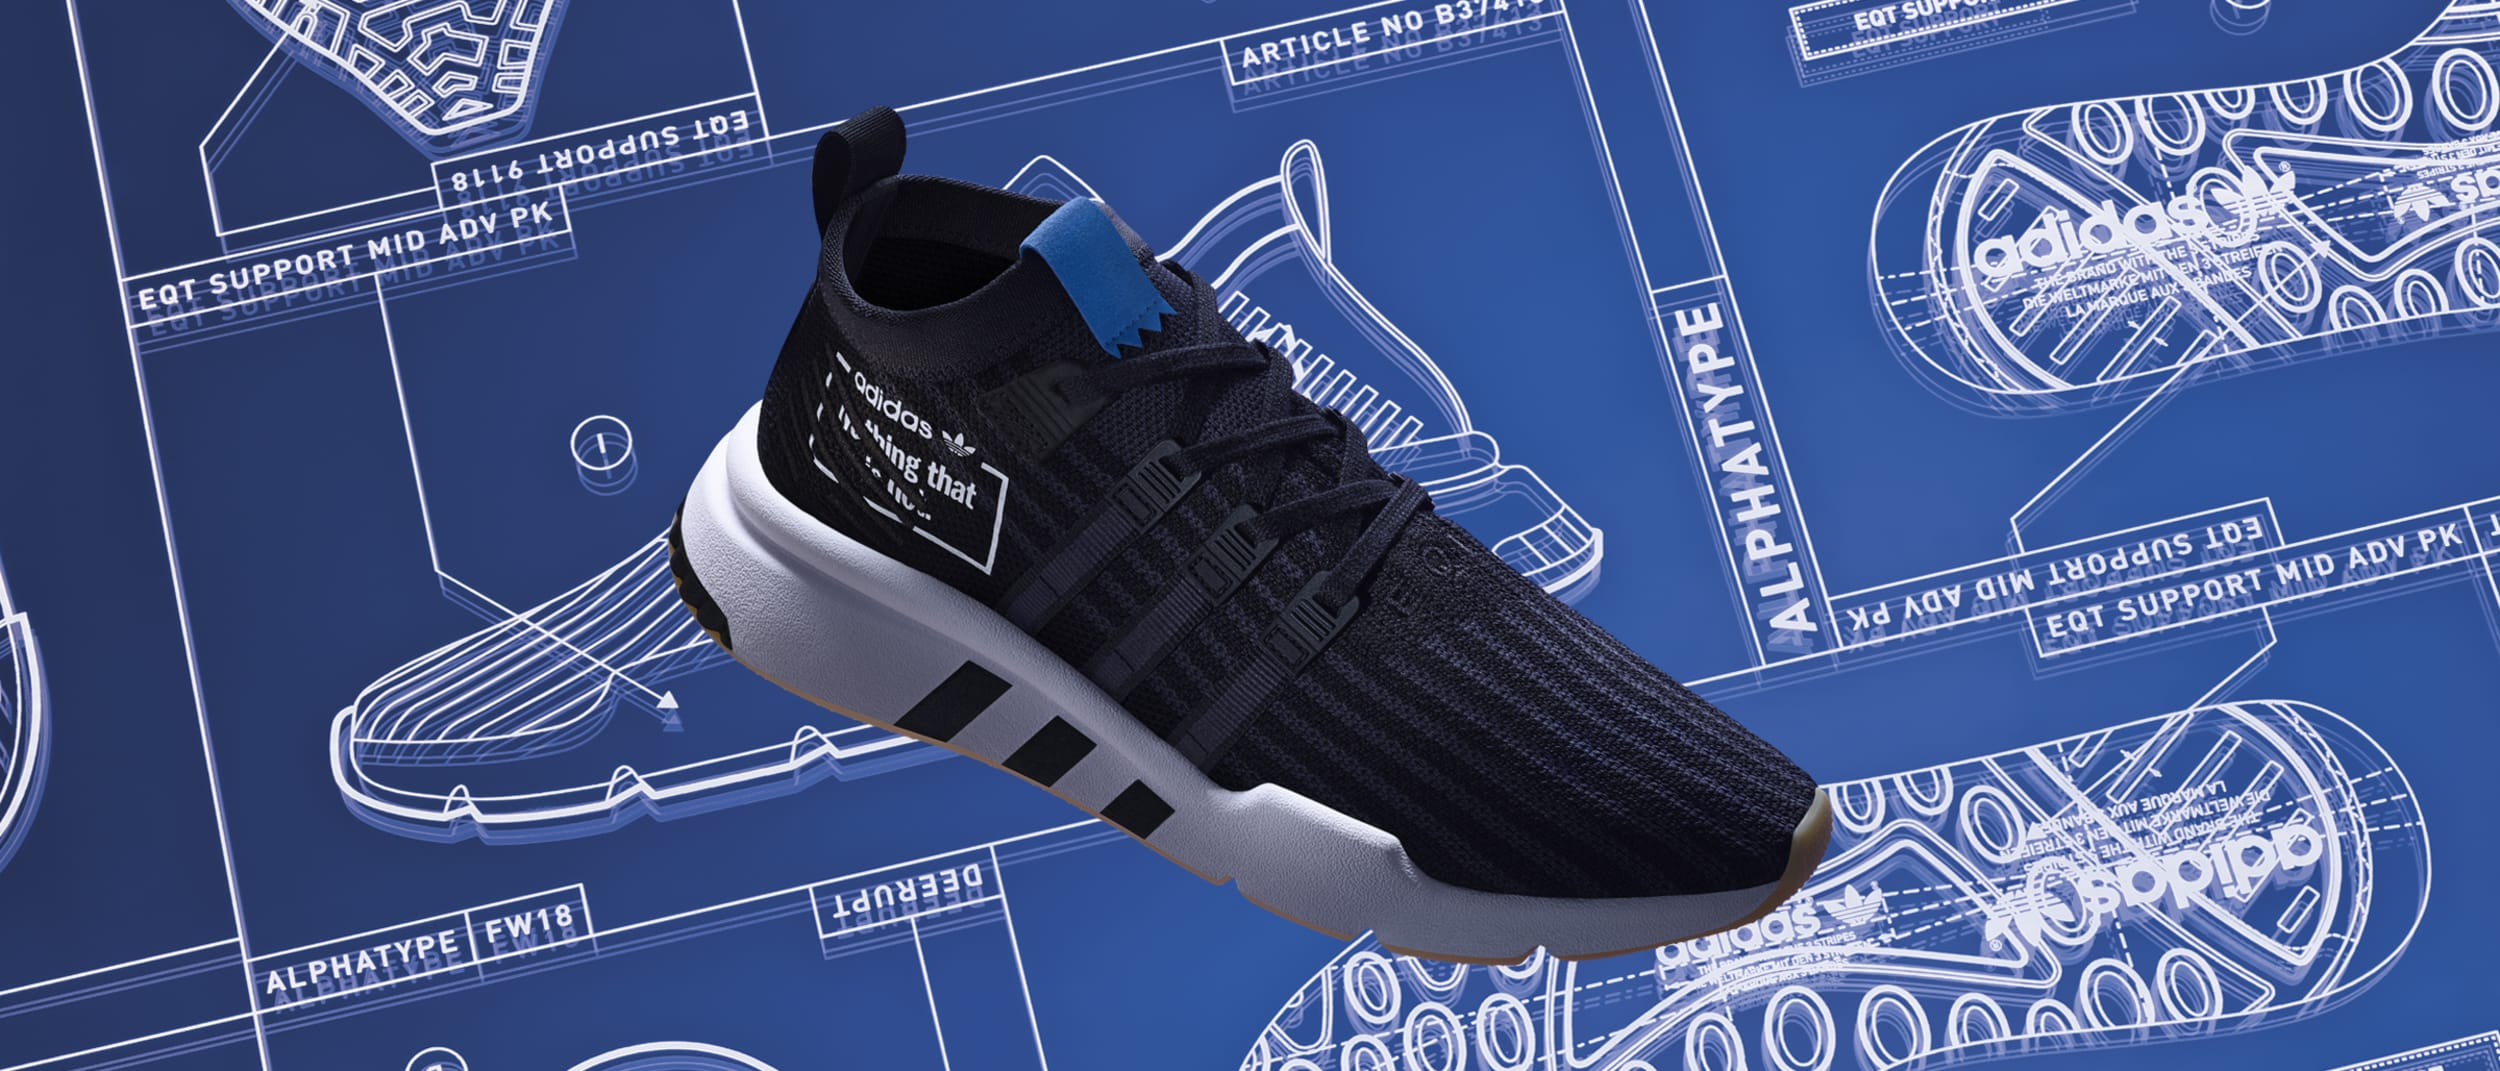 adidas Original: introducing Alphatype, greatest sneakers united